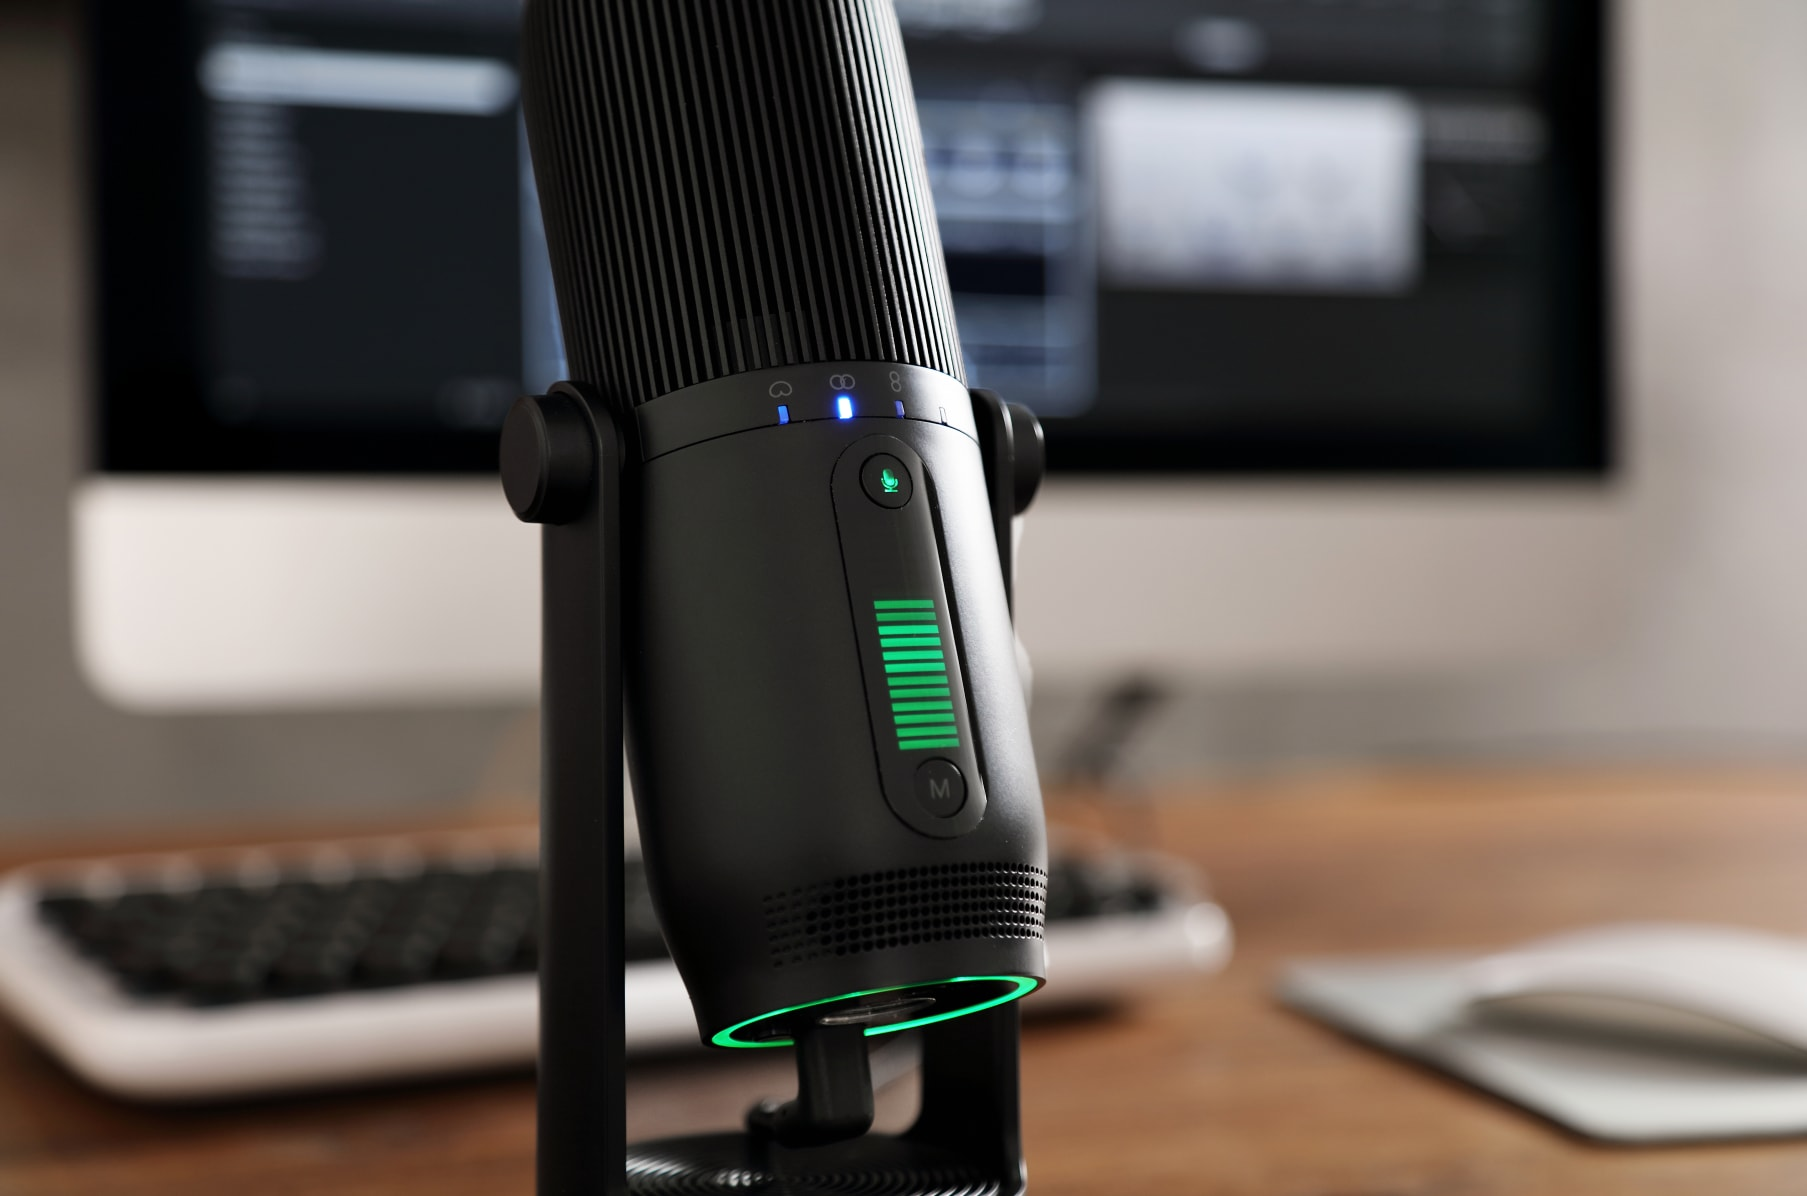 MDrill One Noise Reduction Microphone 96kHz | Indiegogo